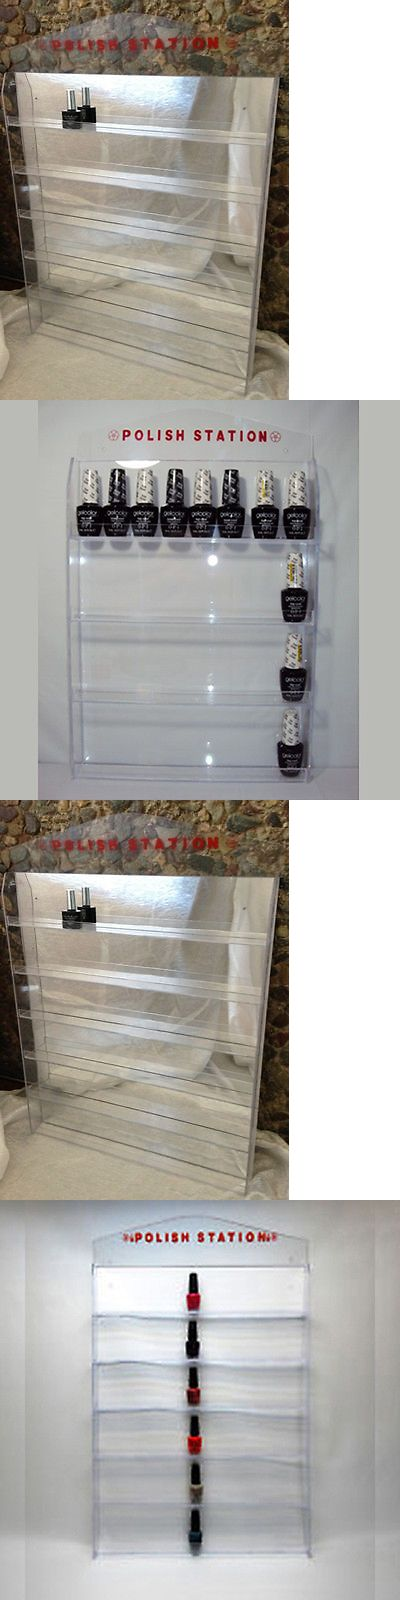 Salon and Spa Supplies: Acrylic Nail Polish Wall Rack Display (Holds 32, 60, 72, Or 96 Bottles) Mirror -> BUY IT NOW ONLY: $39.99 on eBay!